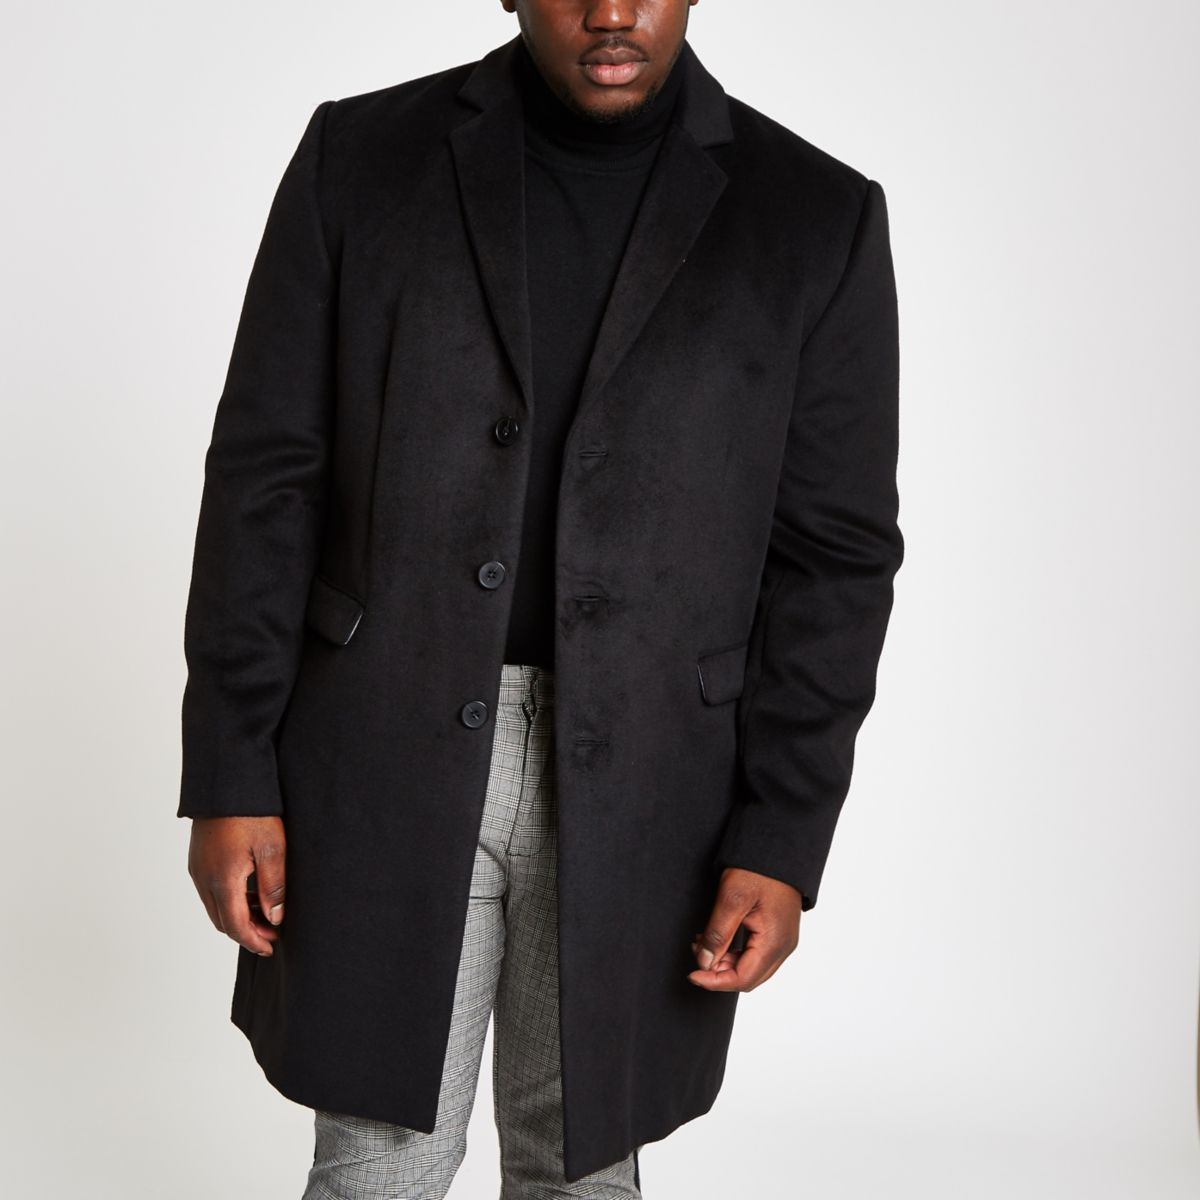 Big & Tall black button up overcoat